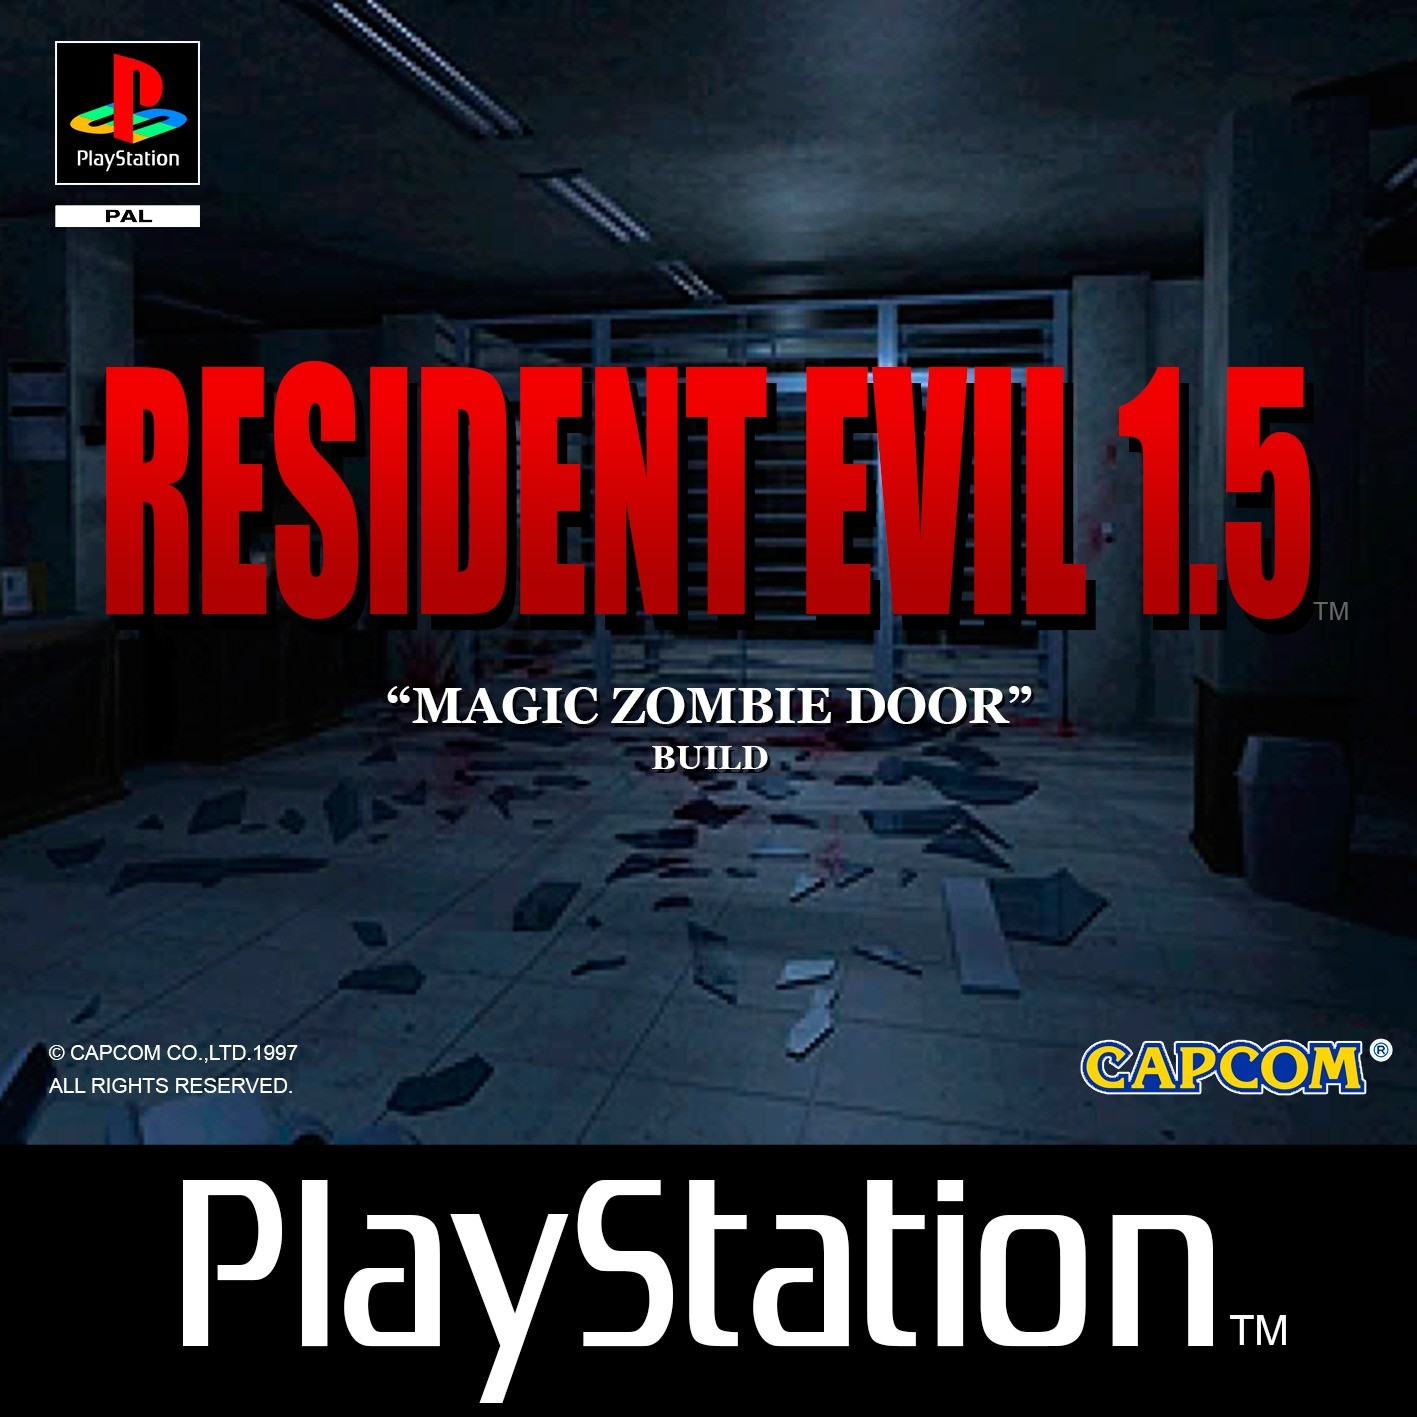 resident evil 1 5 e 2015 mzd playstation paradize. Black Bedroom Furniture Sets. Home Design Ideas